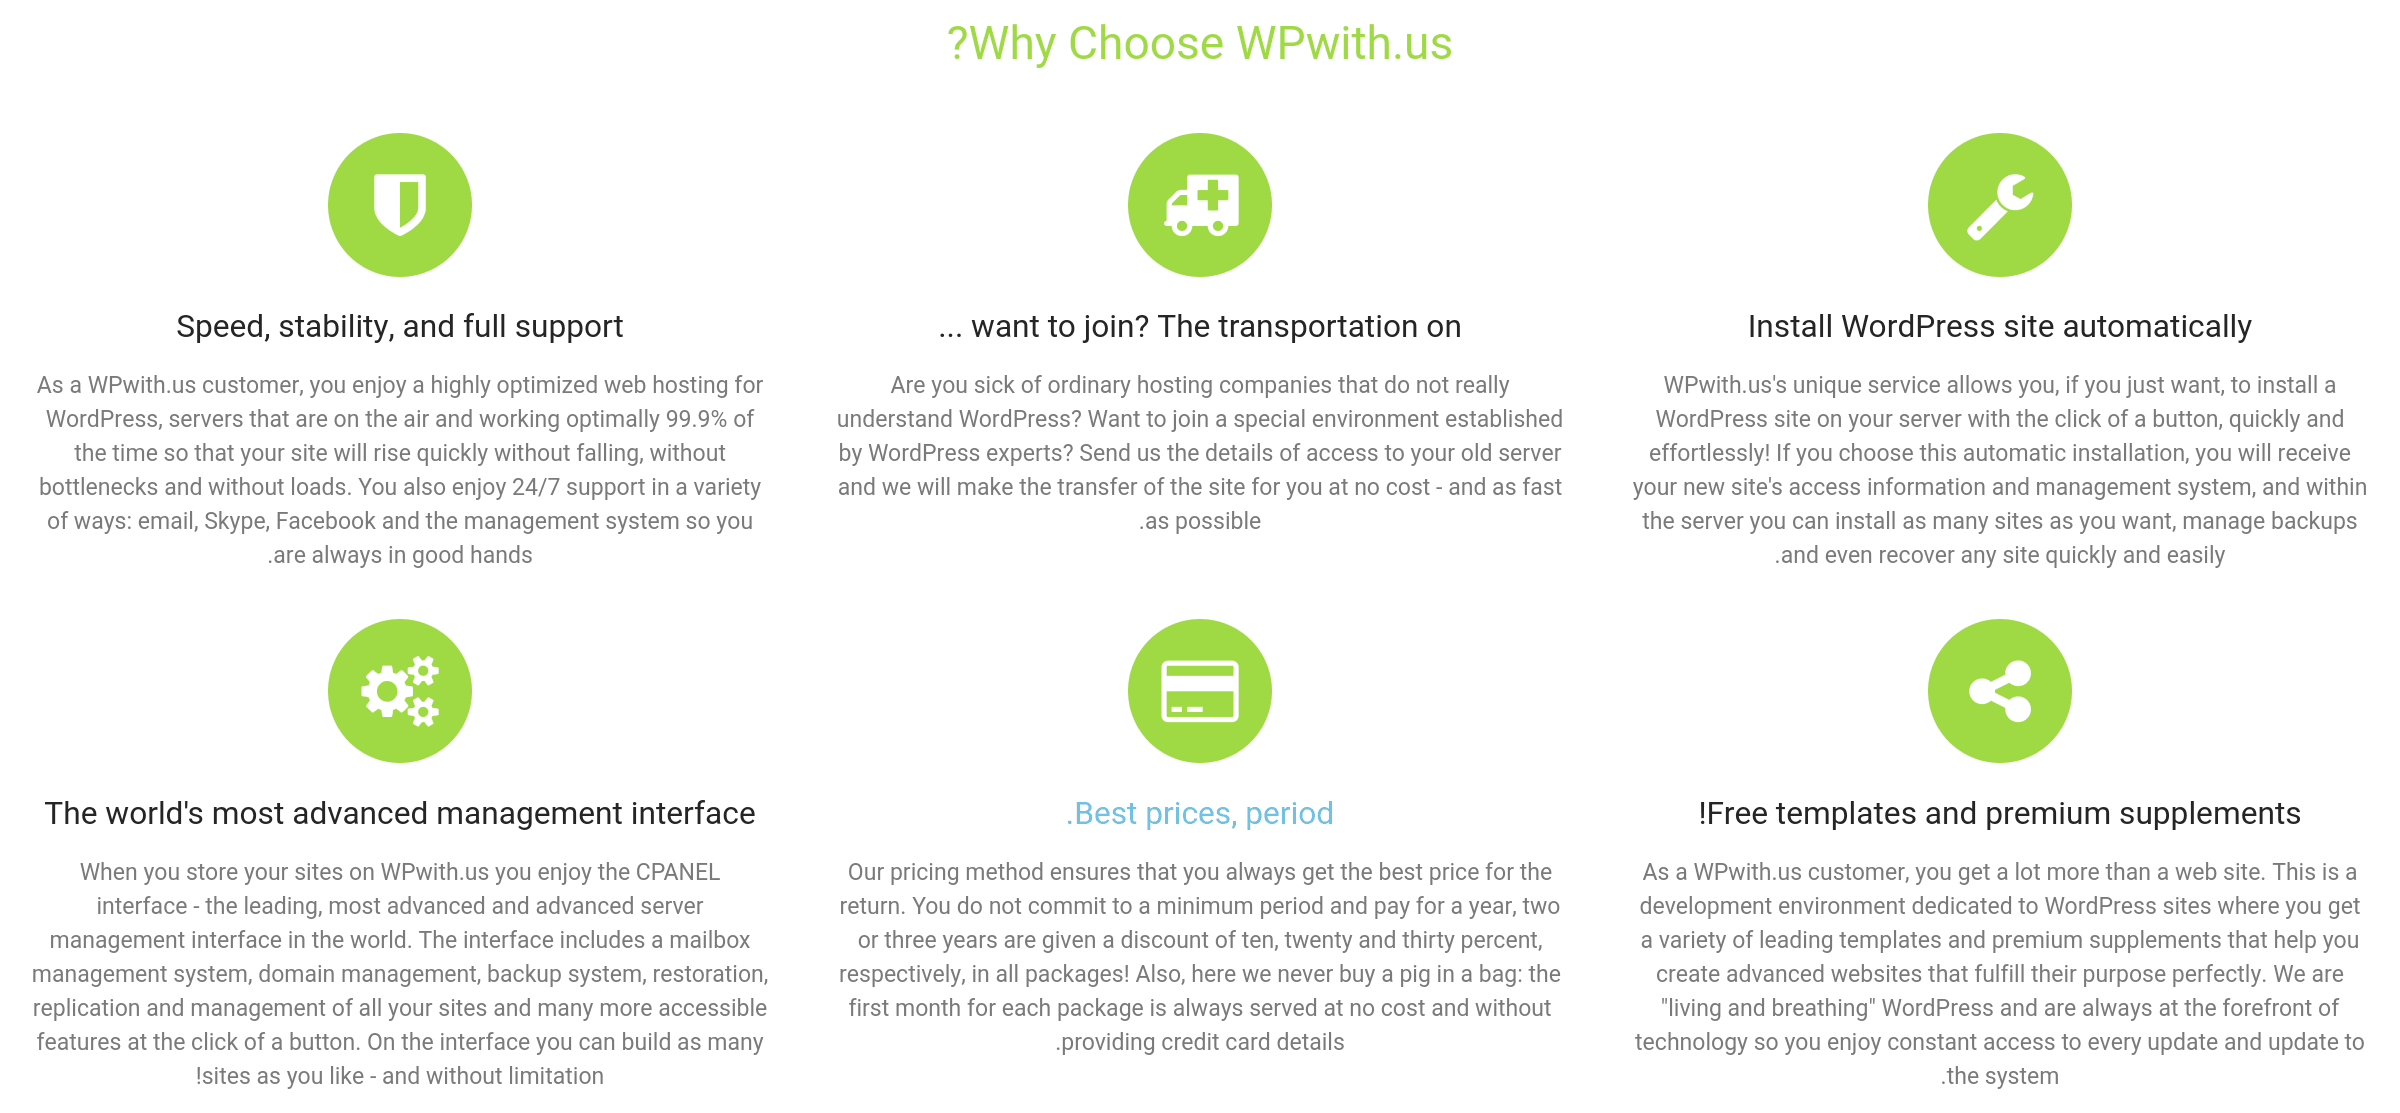 WPwith.us-overview1